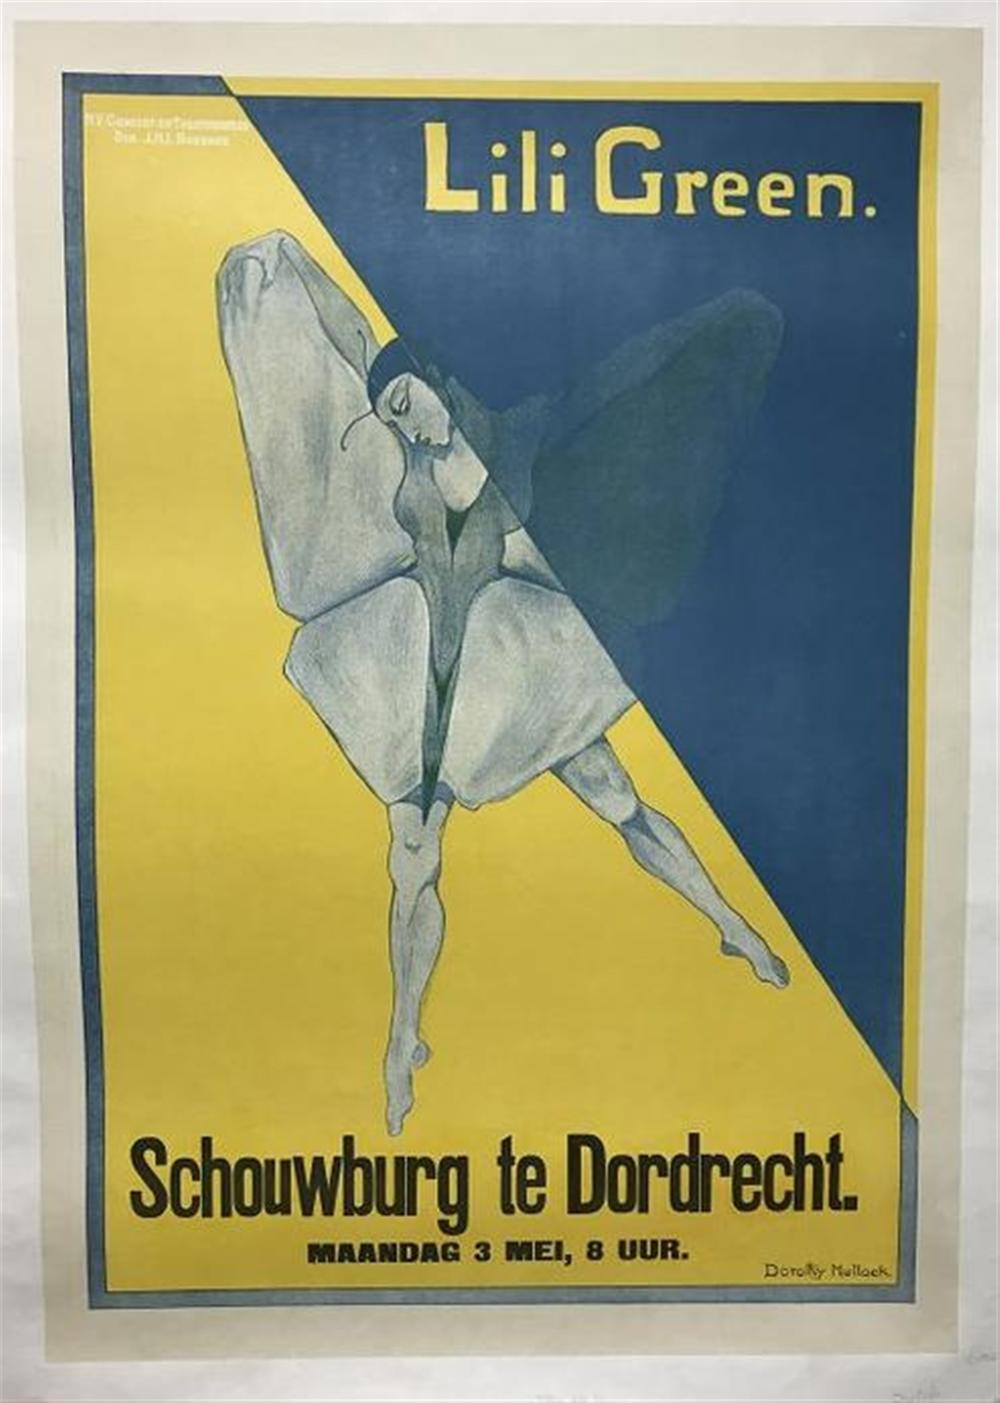 "DUTCH DANCE POSTER CIRCA 1920, LILI GREEN ARTIST IS DOROTHY MULLOCK, LINEN BACKED, POSTER MEASURES 34 1/2"" X 24"", NICE CONDITION."